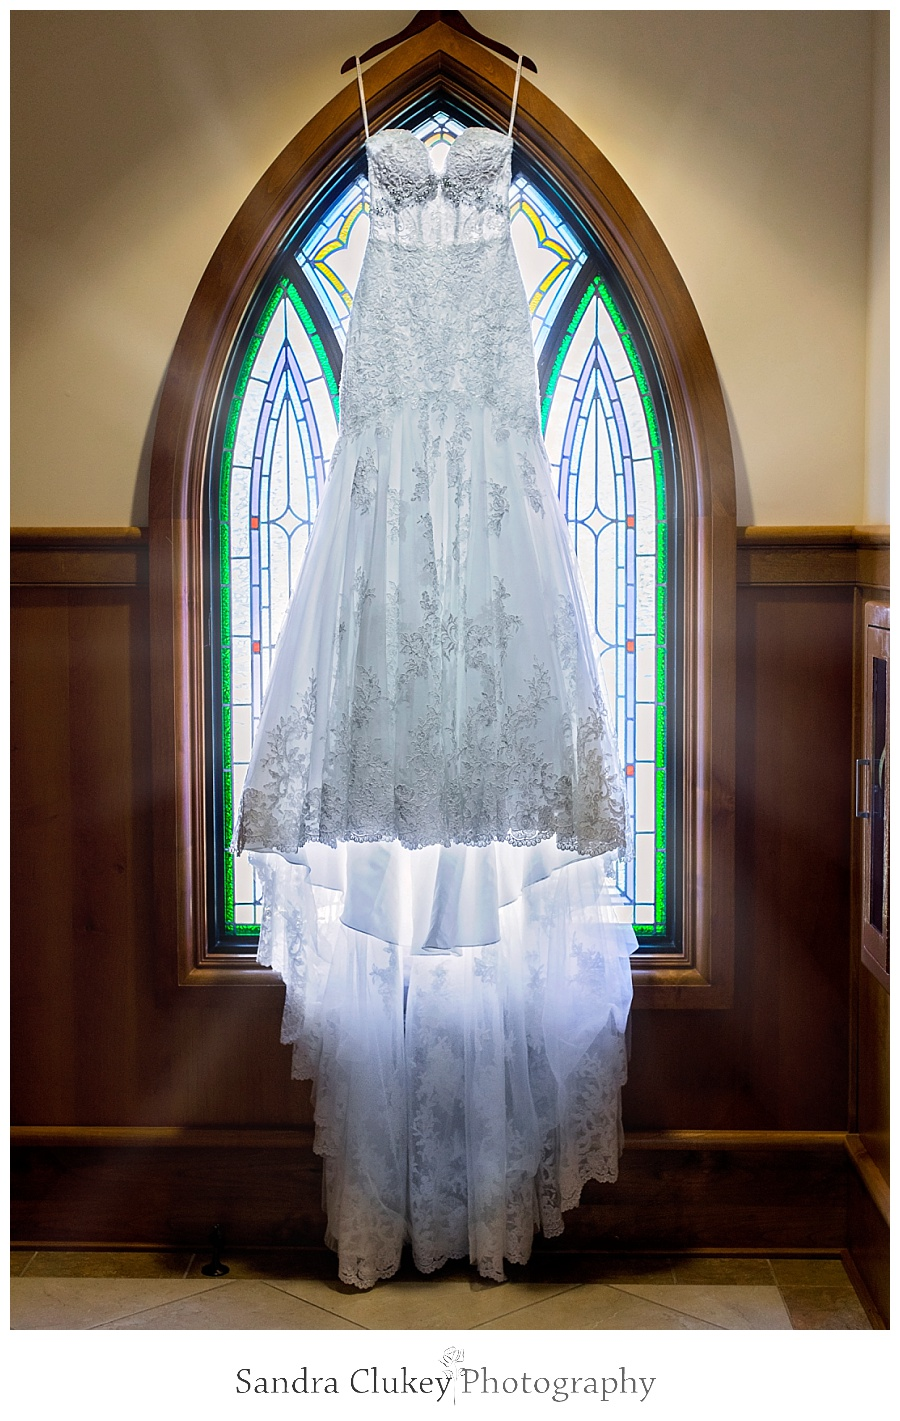 Gorgeous wedding gown by stained glass window